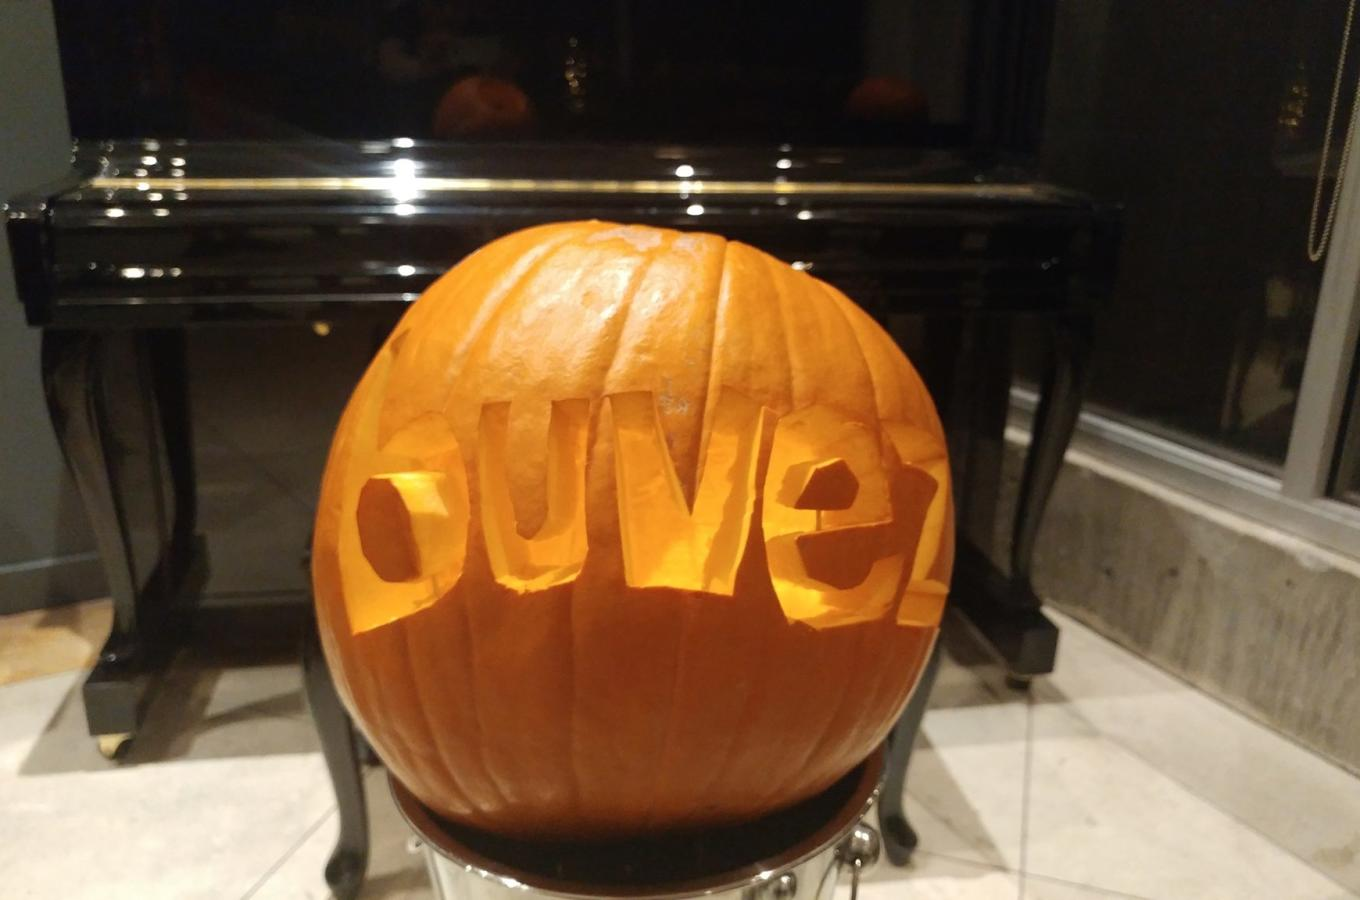 buvez pumpkin carving